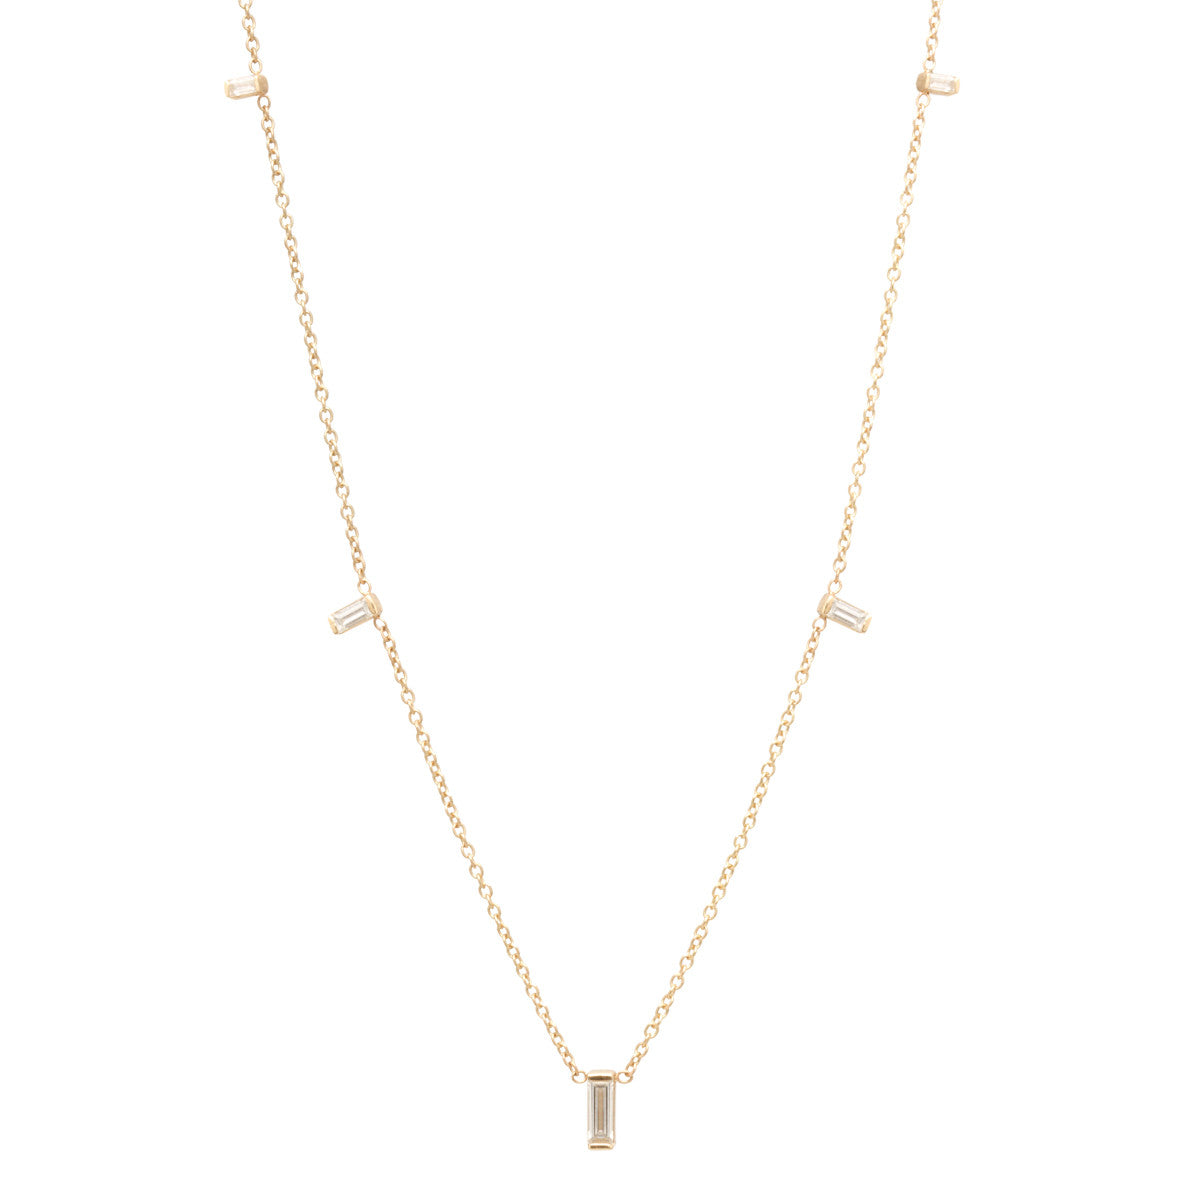 Zoë Chicco 14kt Yellow Gold Graduated Vertical Baguette Diamond Necklace